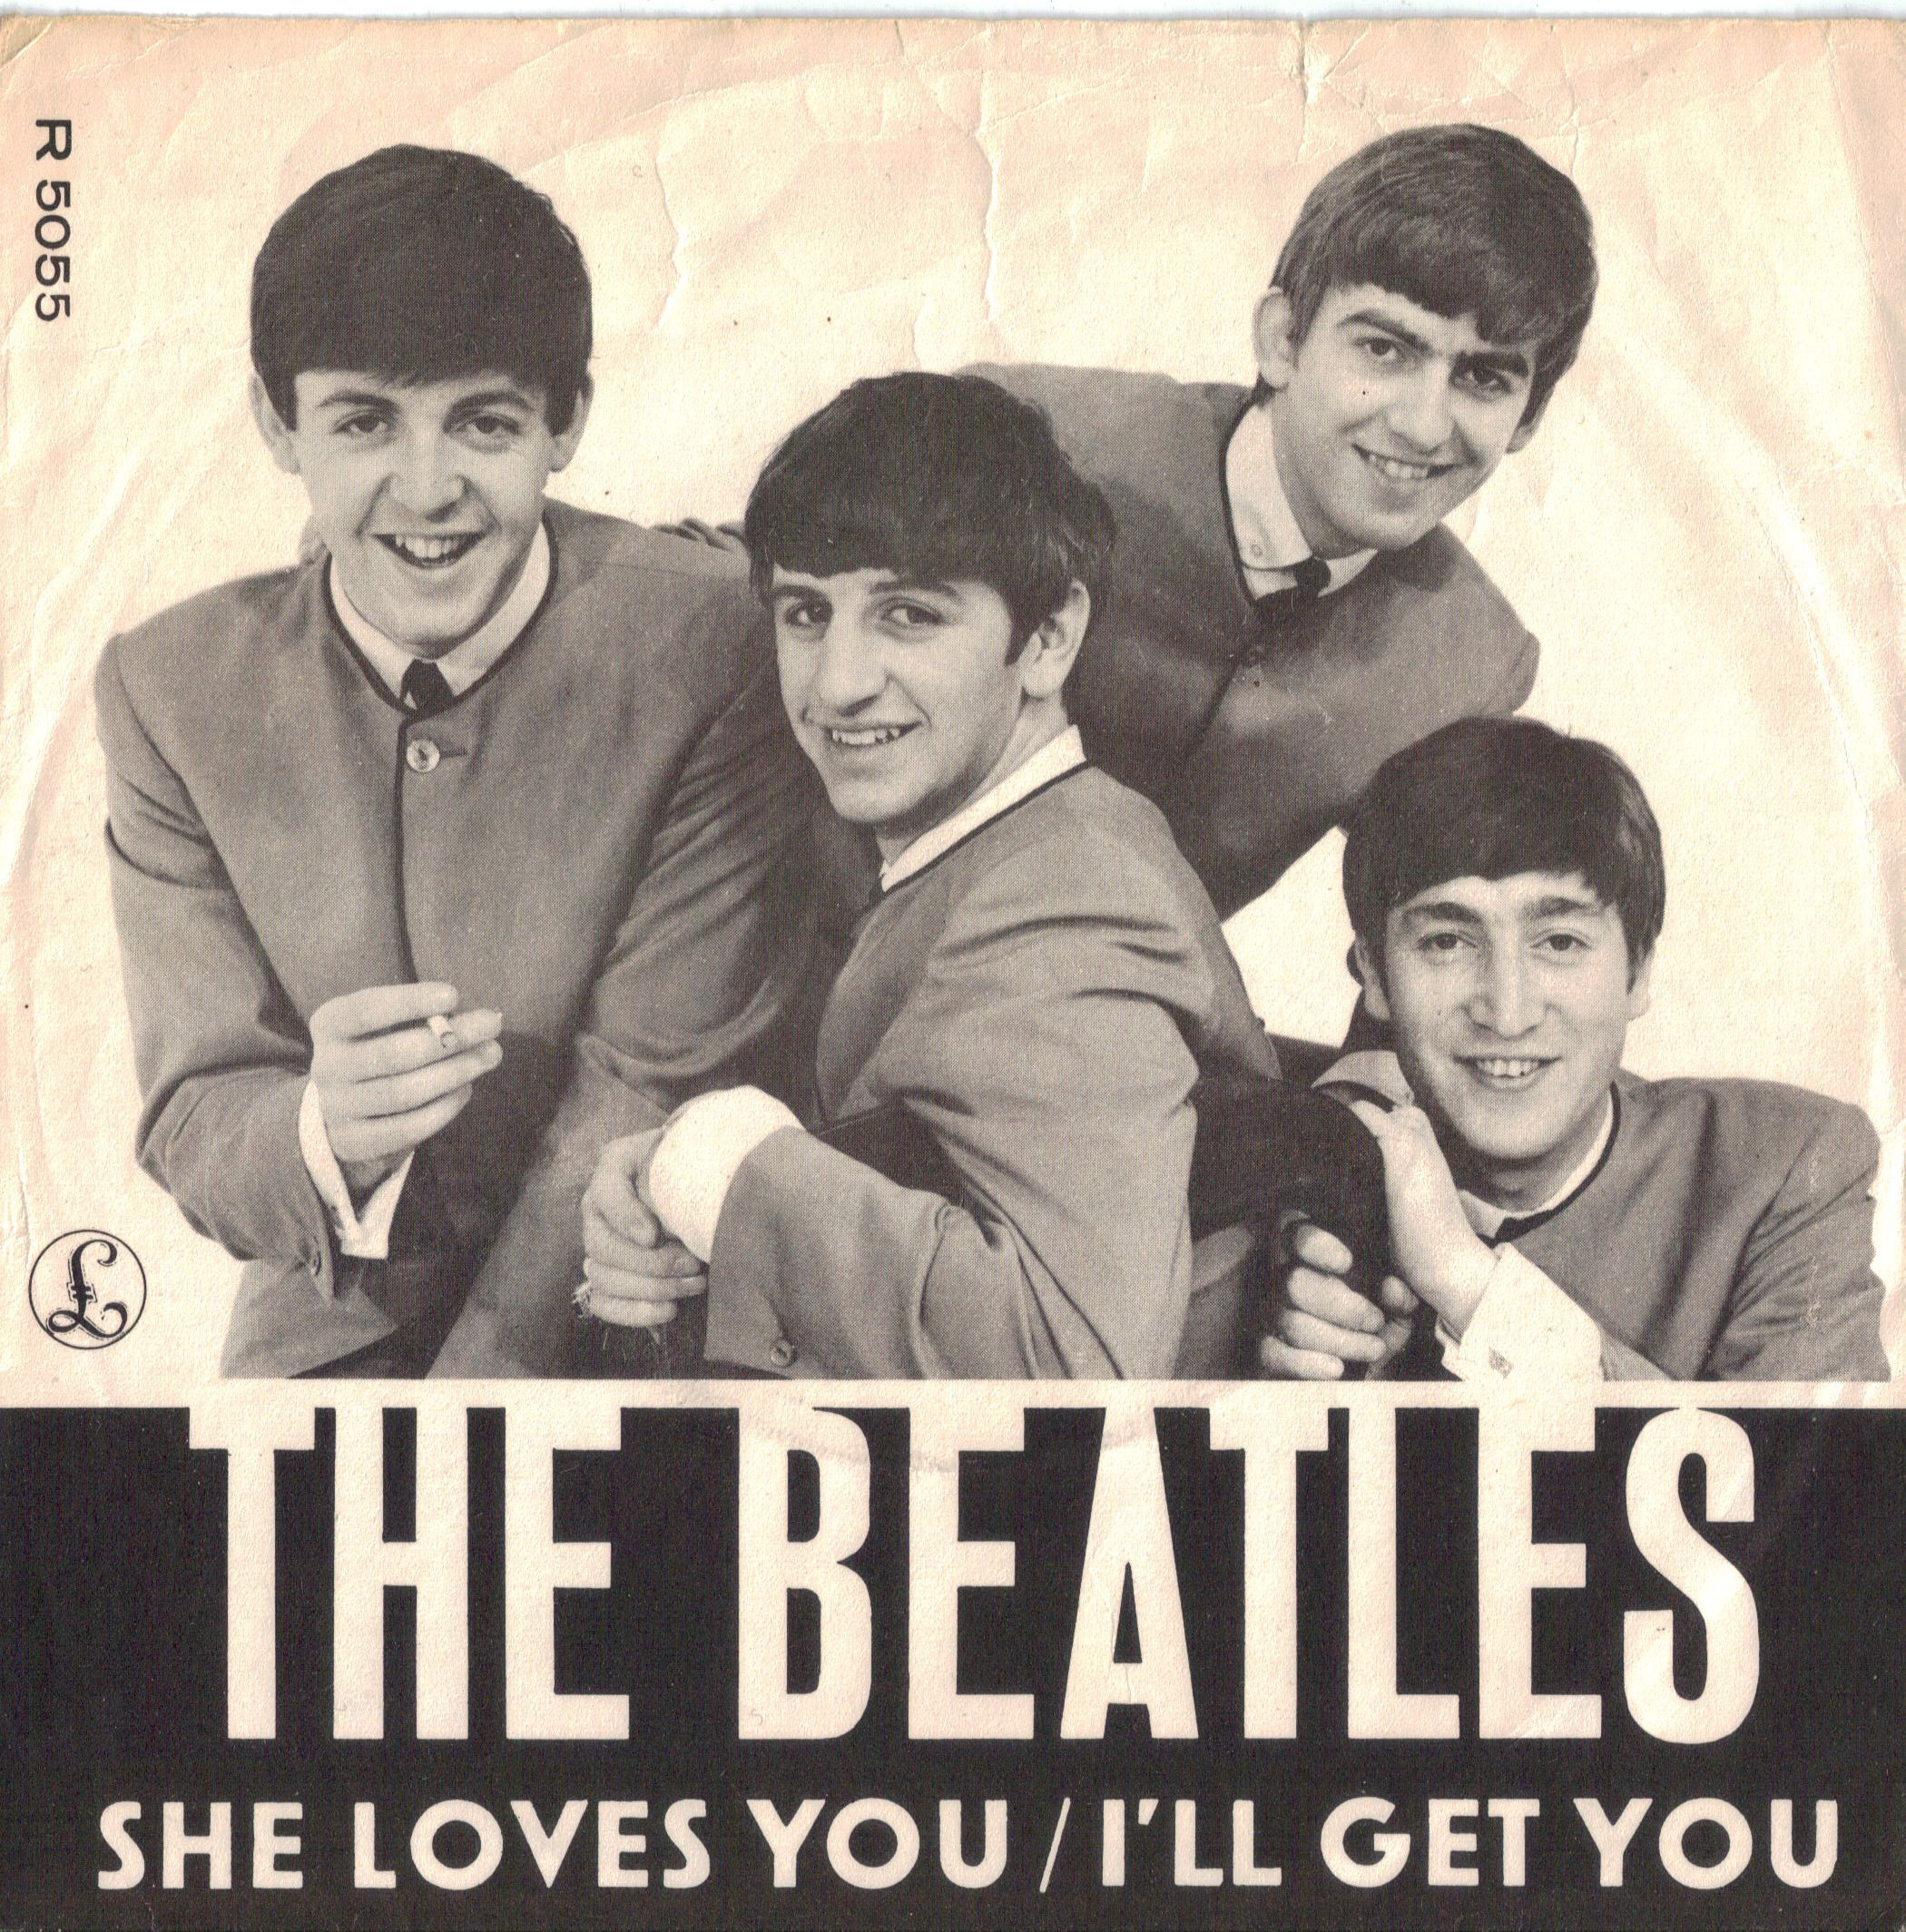 September 16 1963 She Loves You By The Beatles Was Released By Swan Records In The Us Although The Song Wa The Beatles The Beatles History Beatles Albums